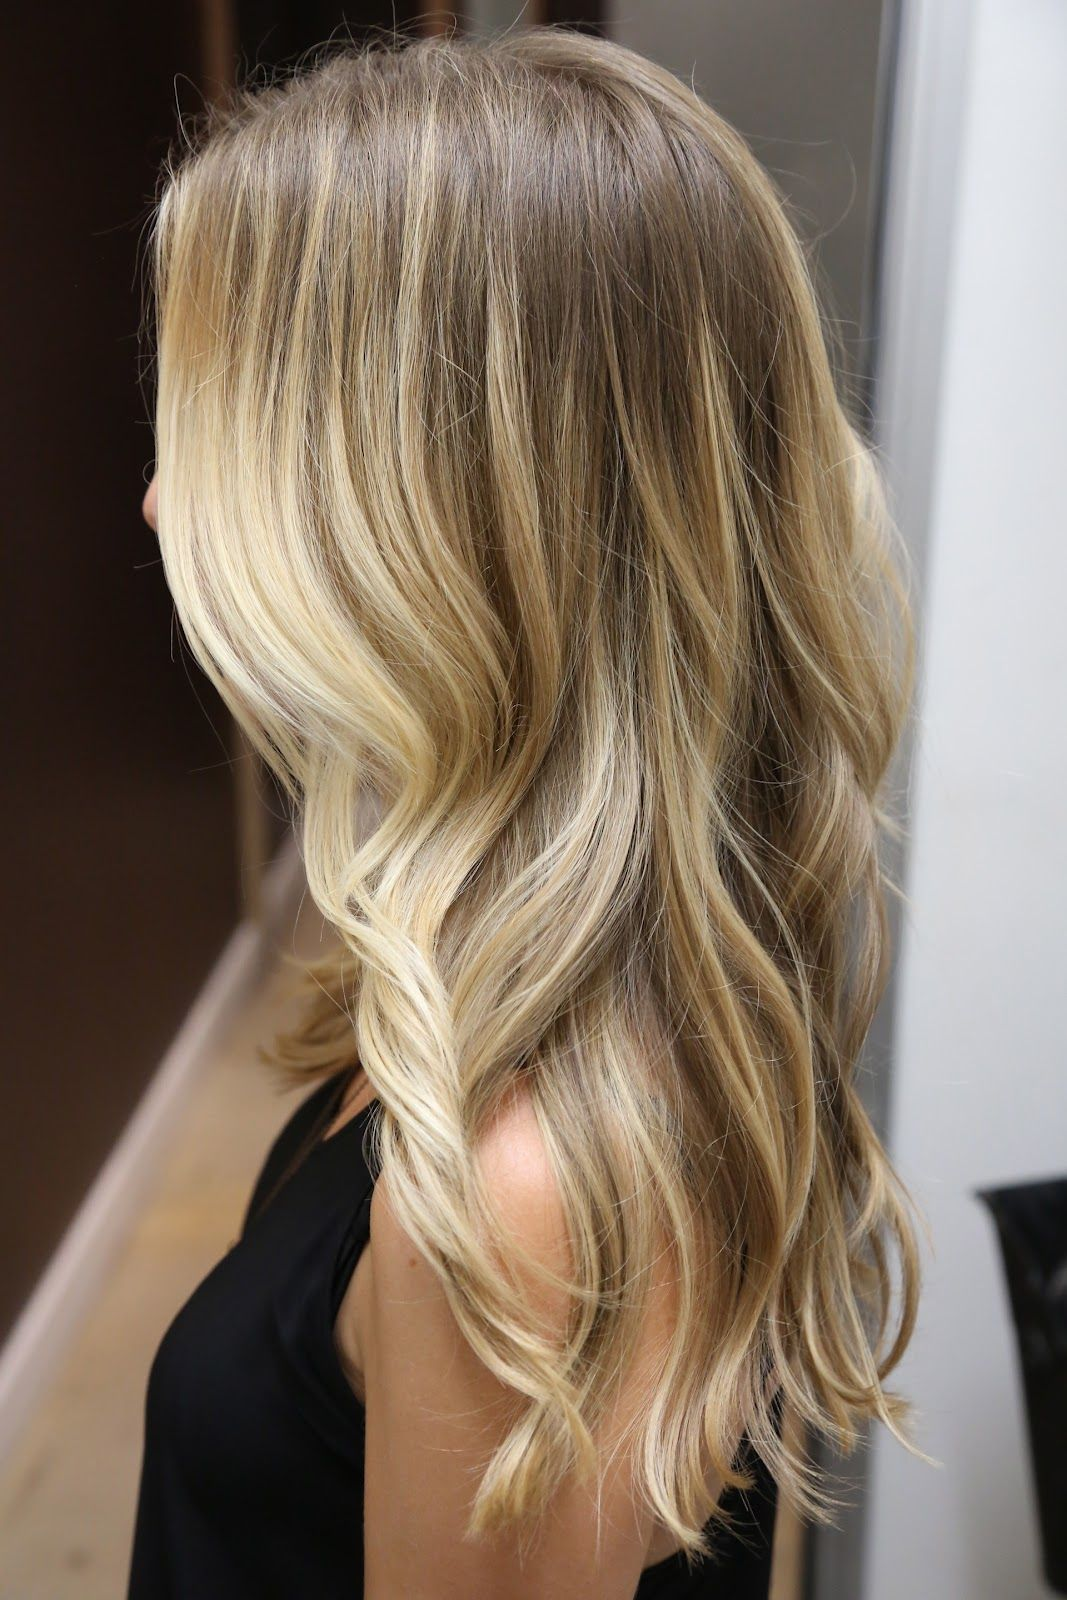 Get your blonde hair looking long strong and beautiful with hair